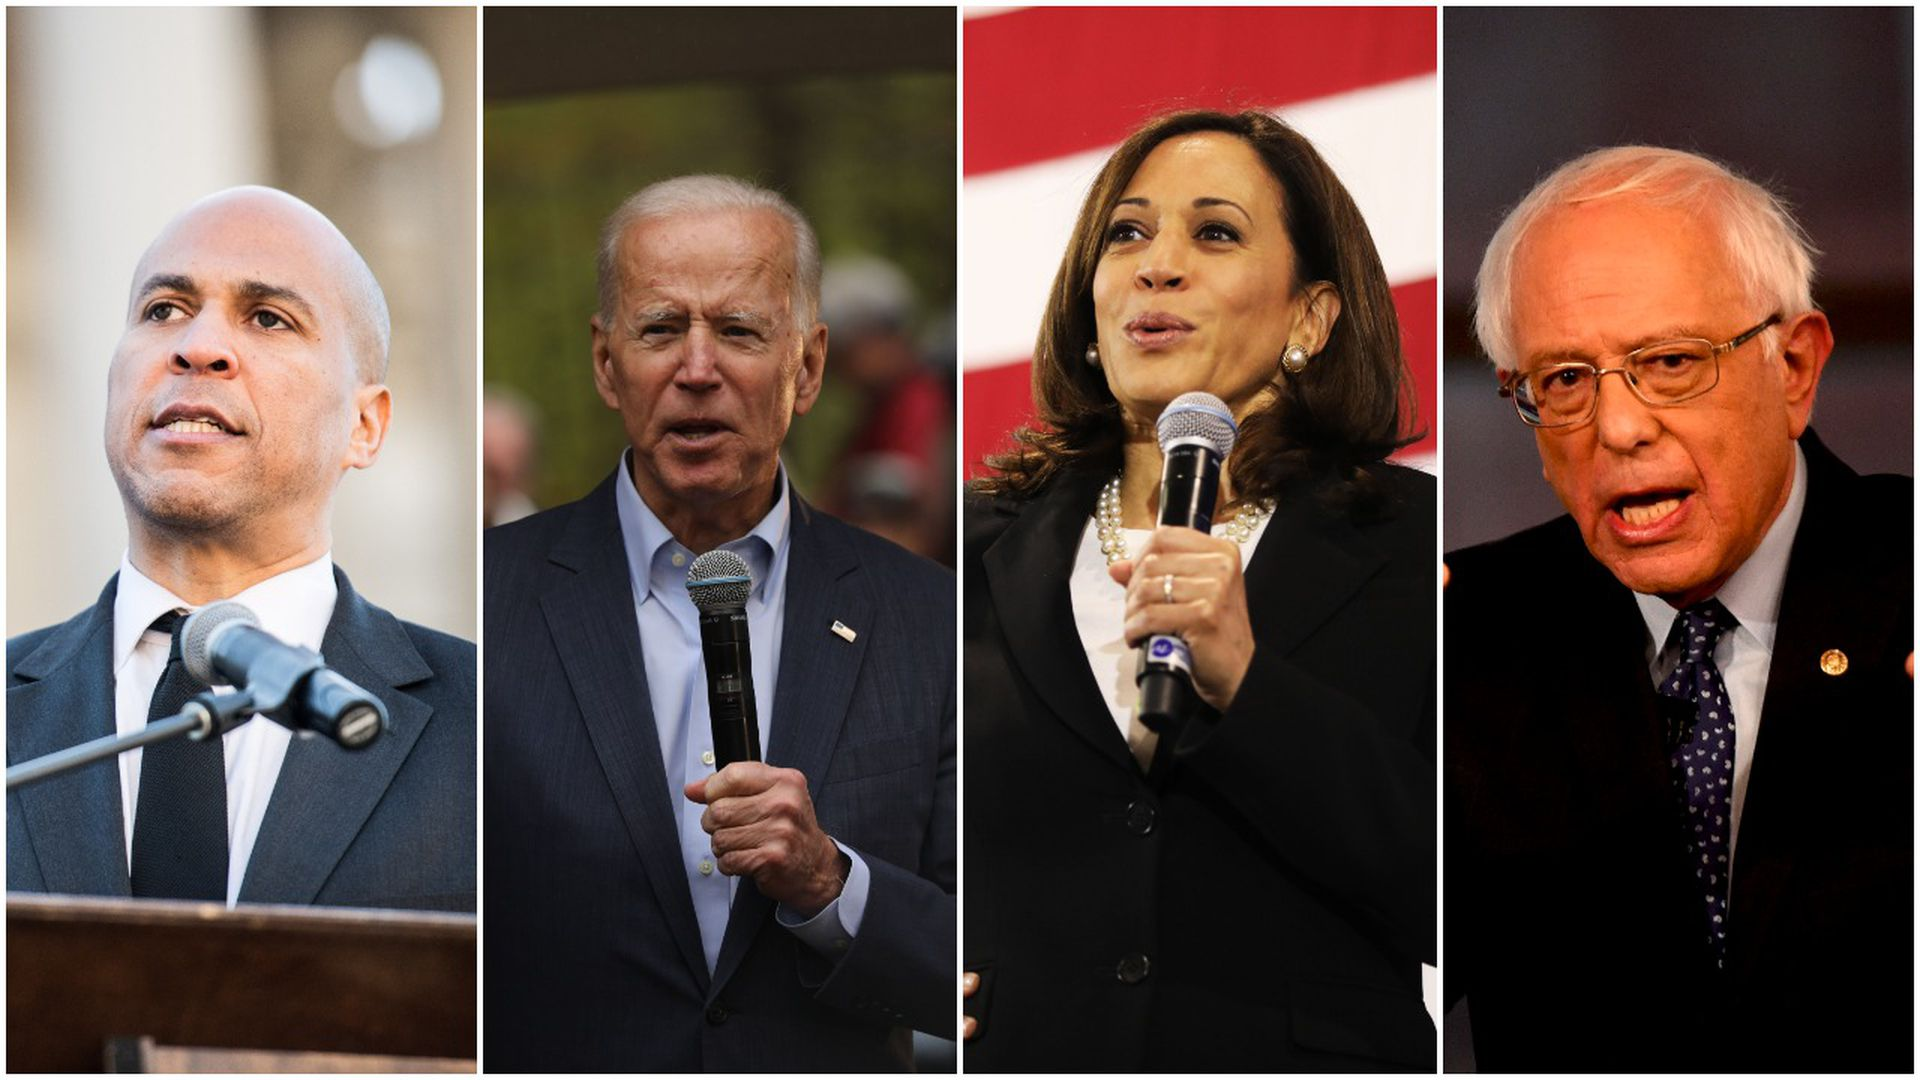 Best Food Sealer 2020 Where the top 2020 Democrats stand on criminal justice reform   Axios